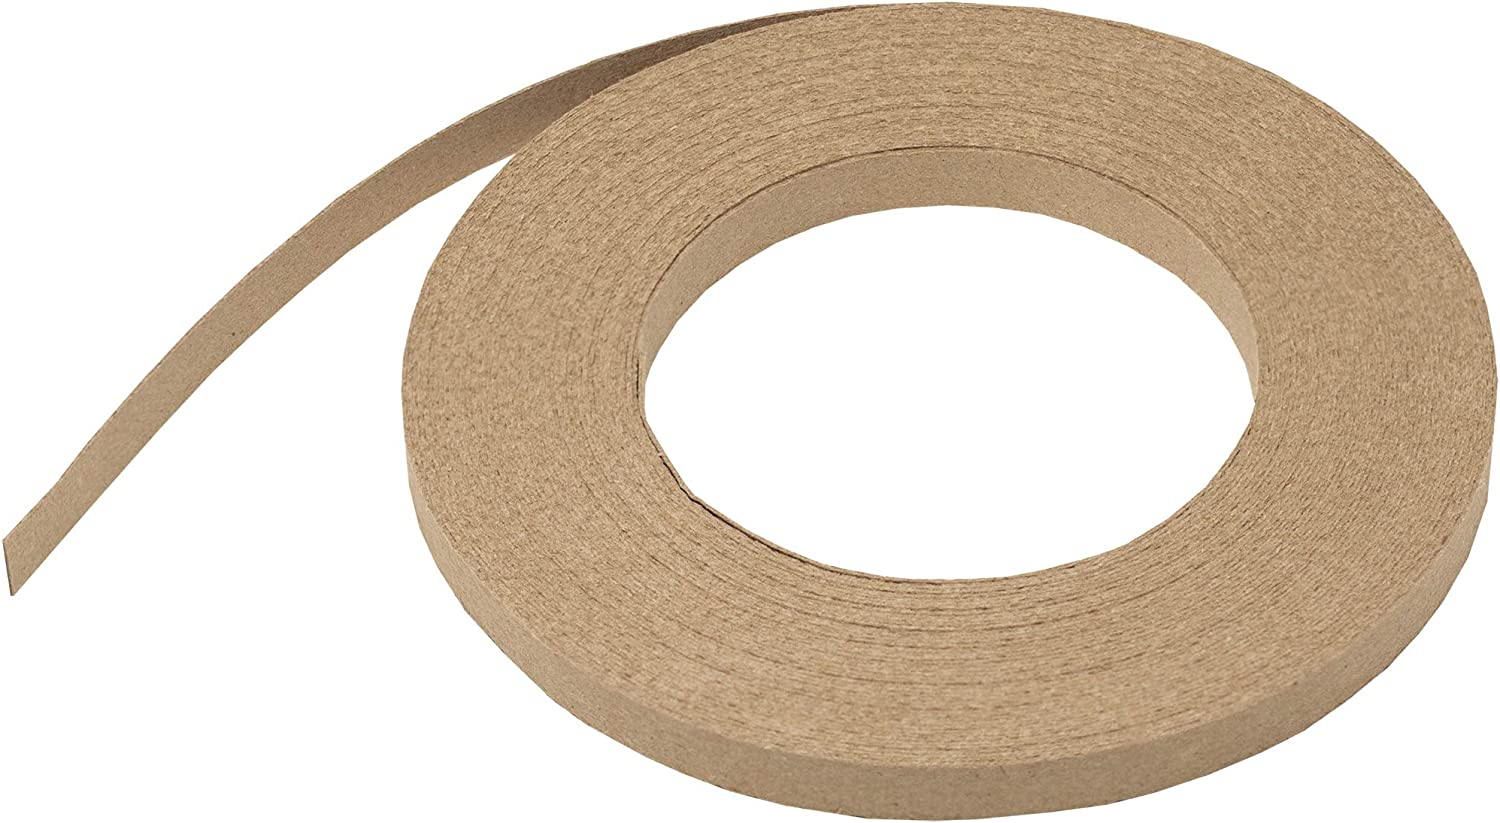 House2Home Upholstery Tack Strip, 1/2 Inch x 20 Yard Roll, Great for Making Professional Edges on Furniture, Couch, Chair, and Sofa, Includes Instructions